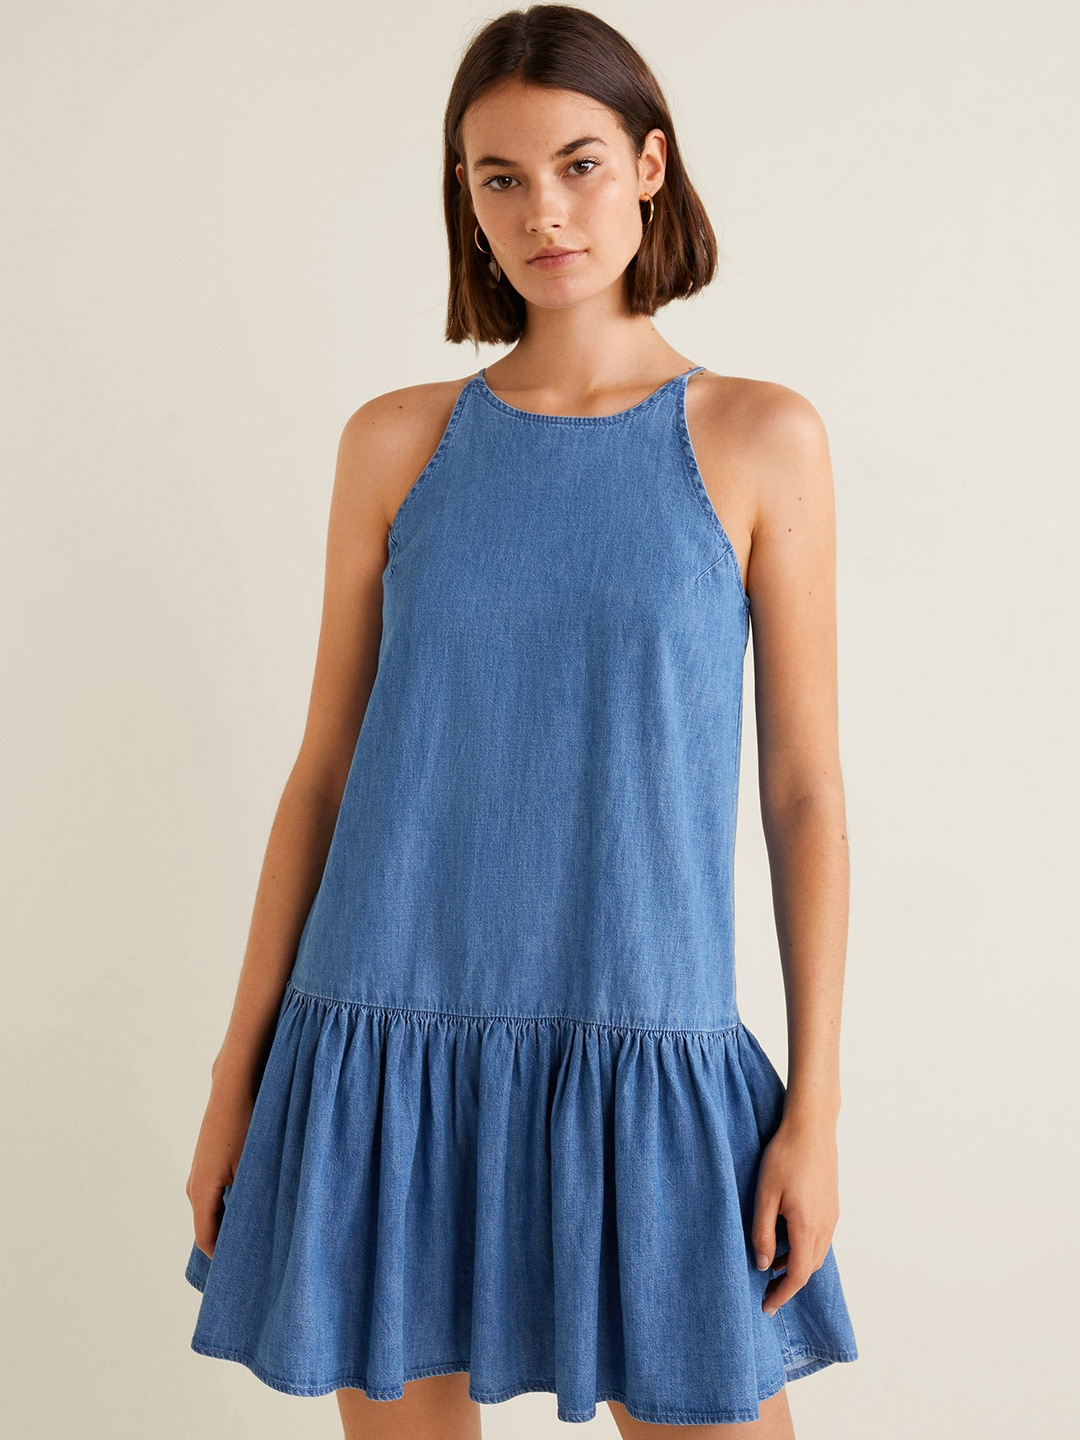 One Piece Dress - Buy One Piece Dresses for Women Online in India 488df0cb6